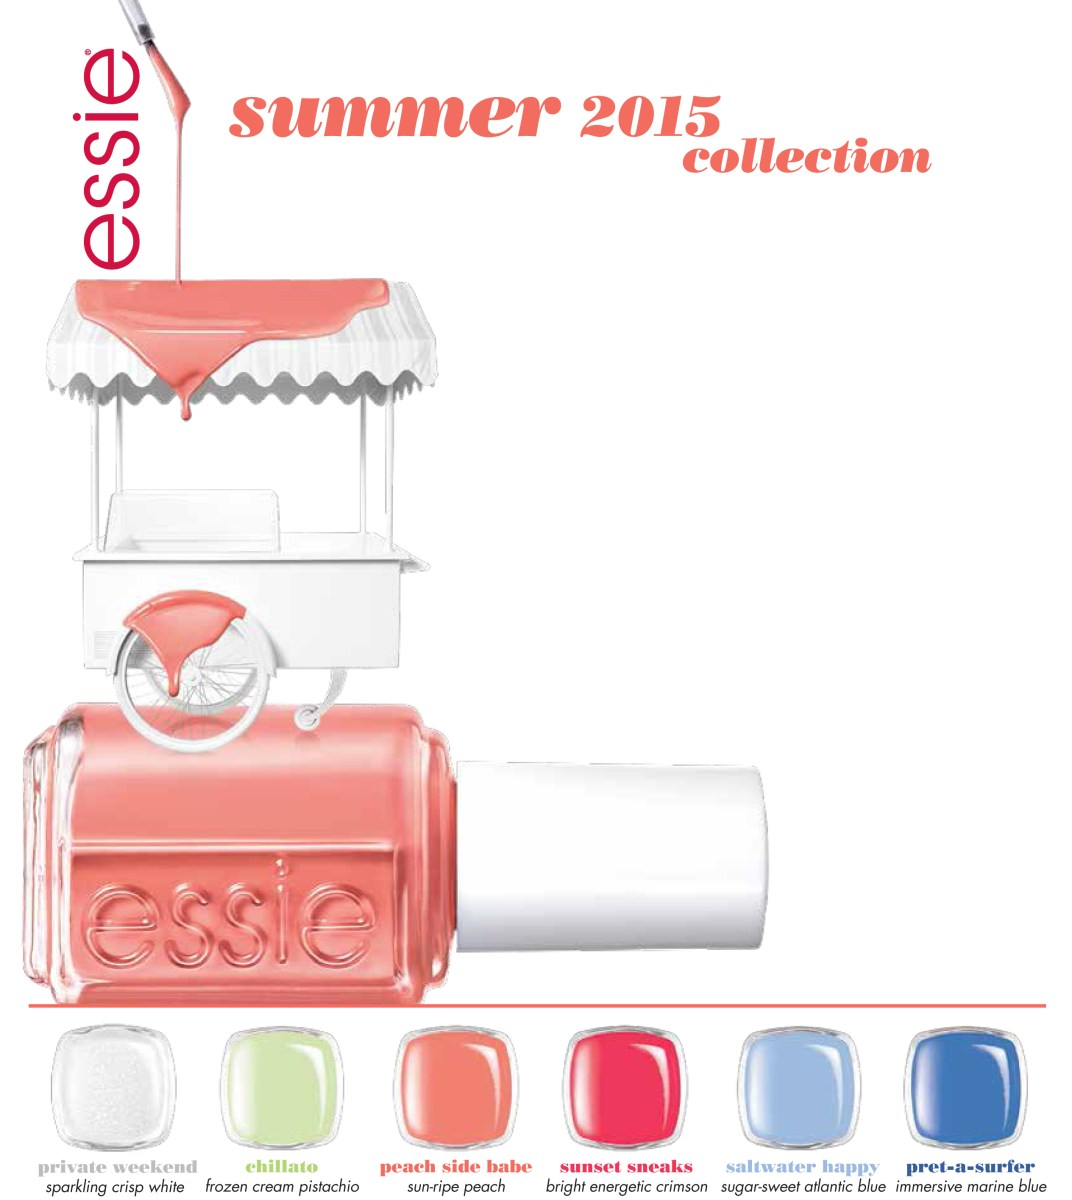 NAIL POLISH NEWS: ESSIE SUMMER 2015